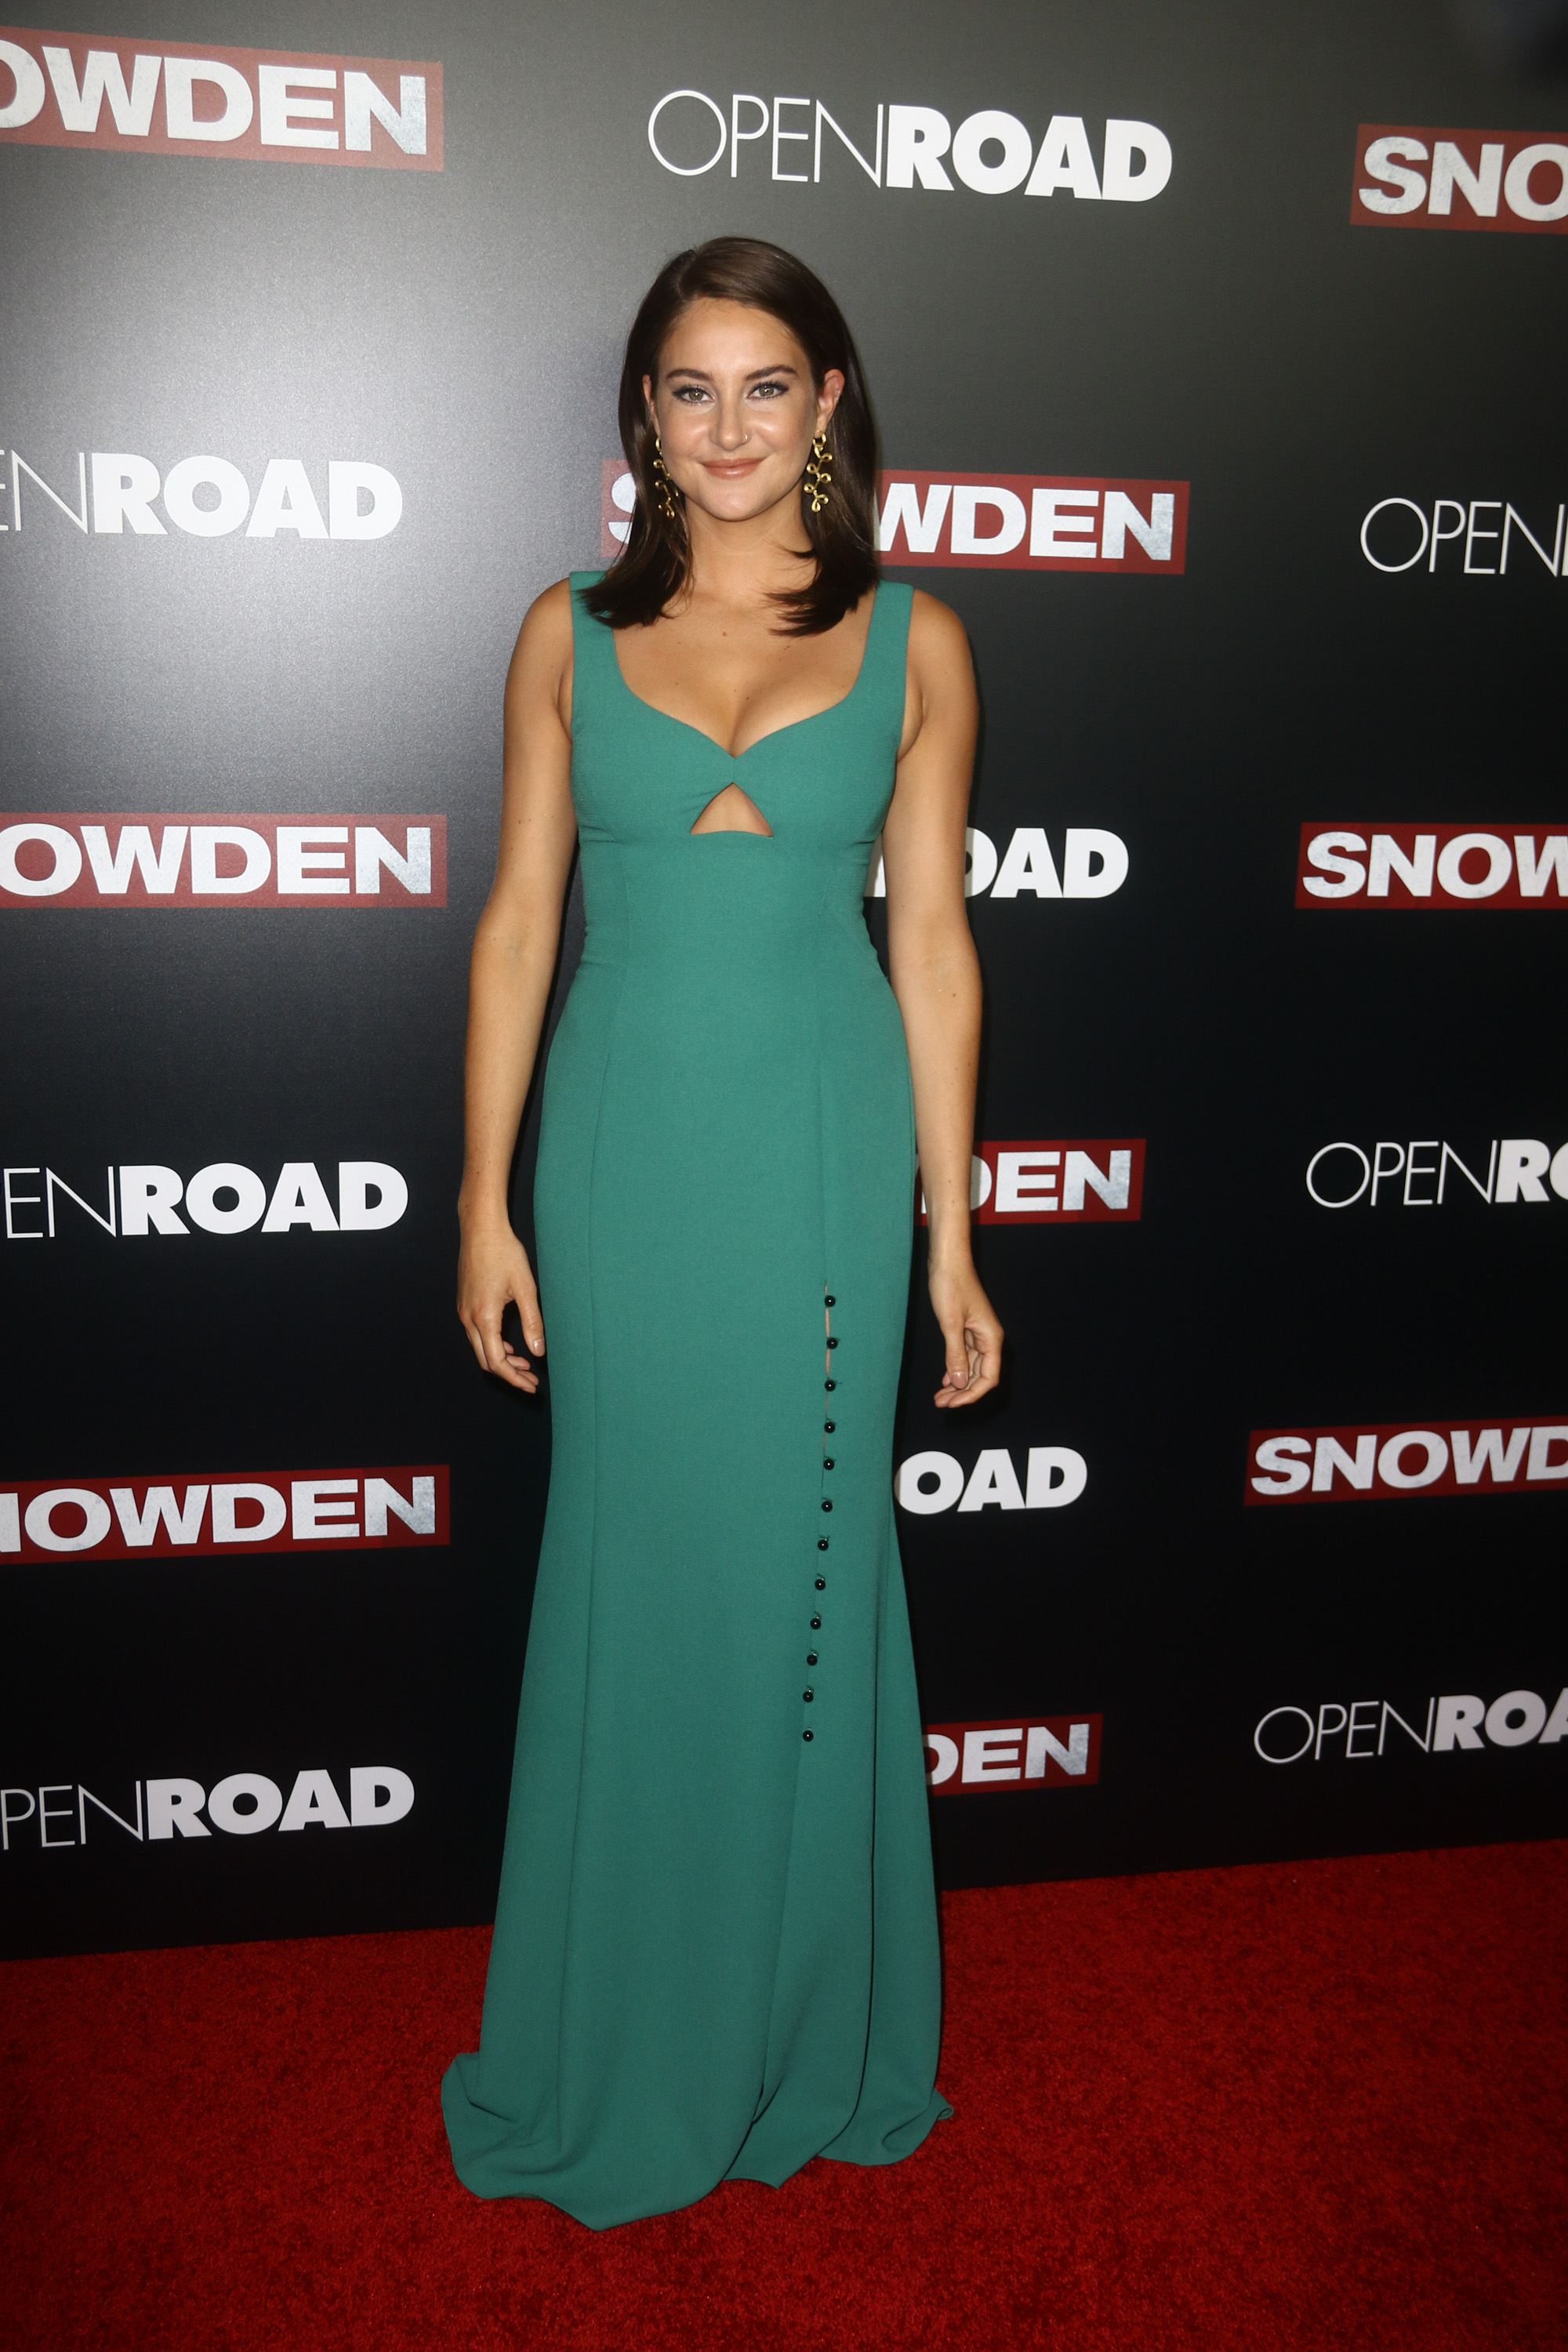 Well Played: Shailene Woodley in Prabal Gurung